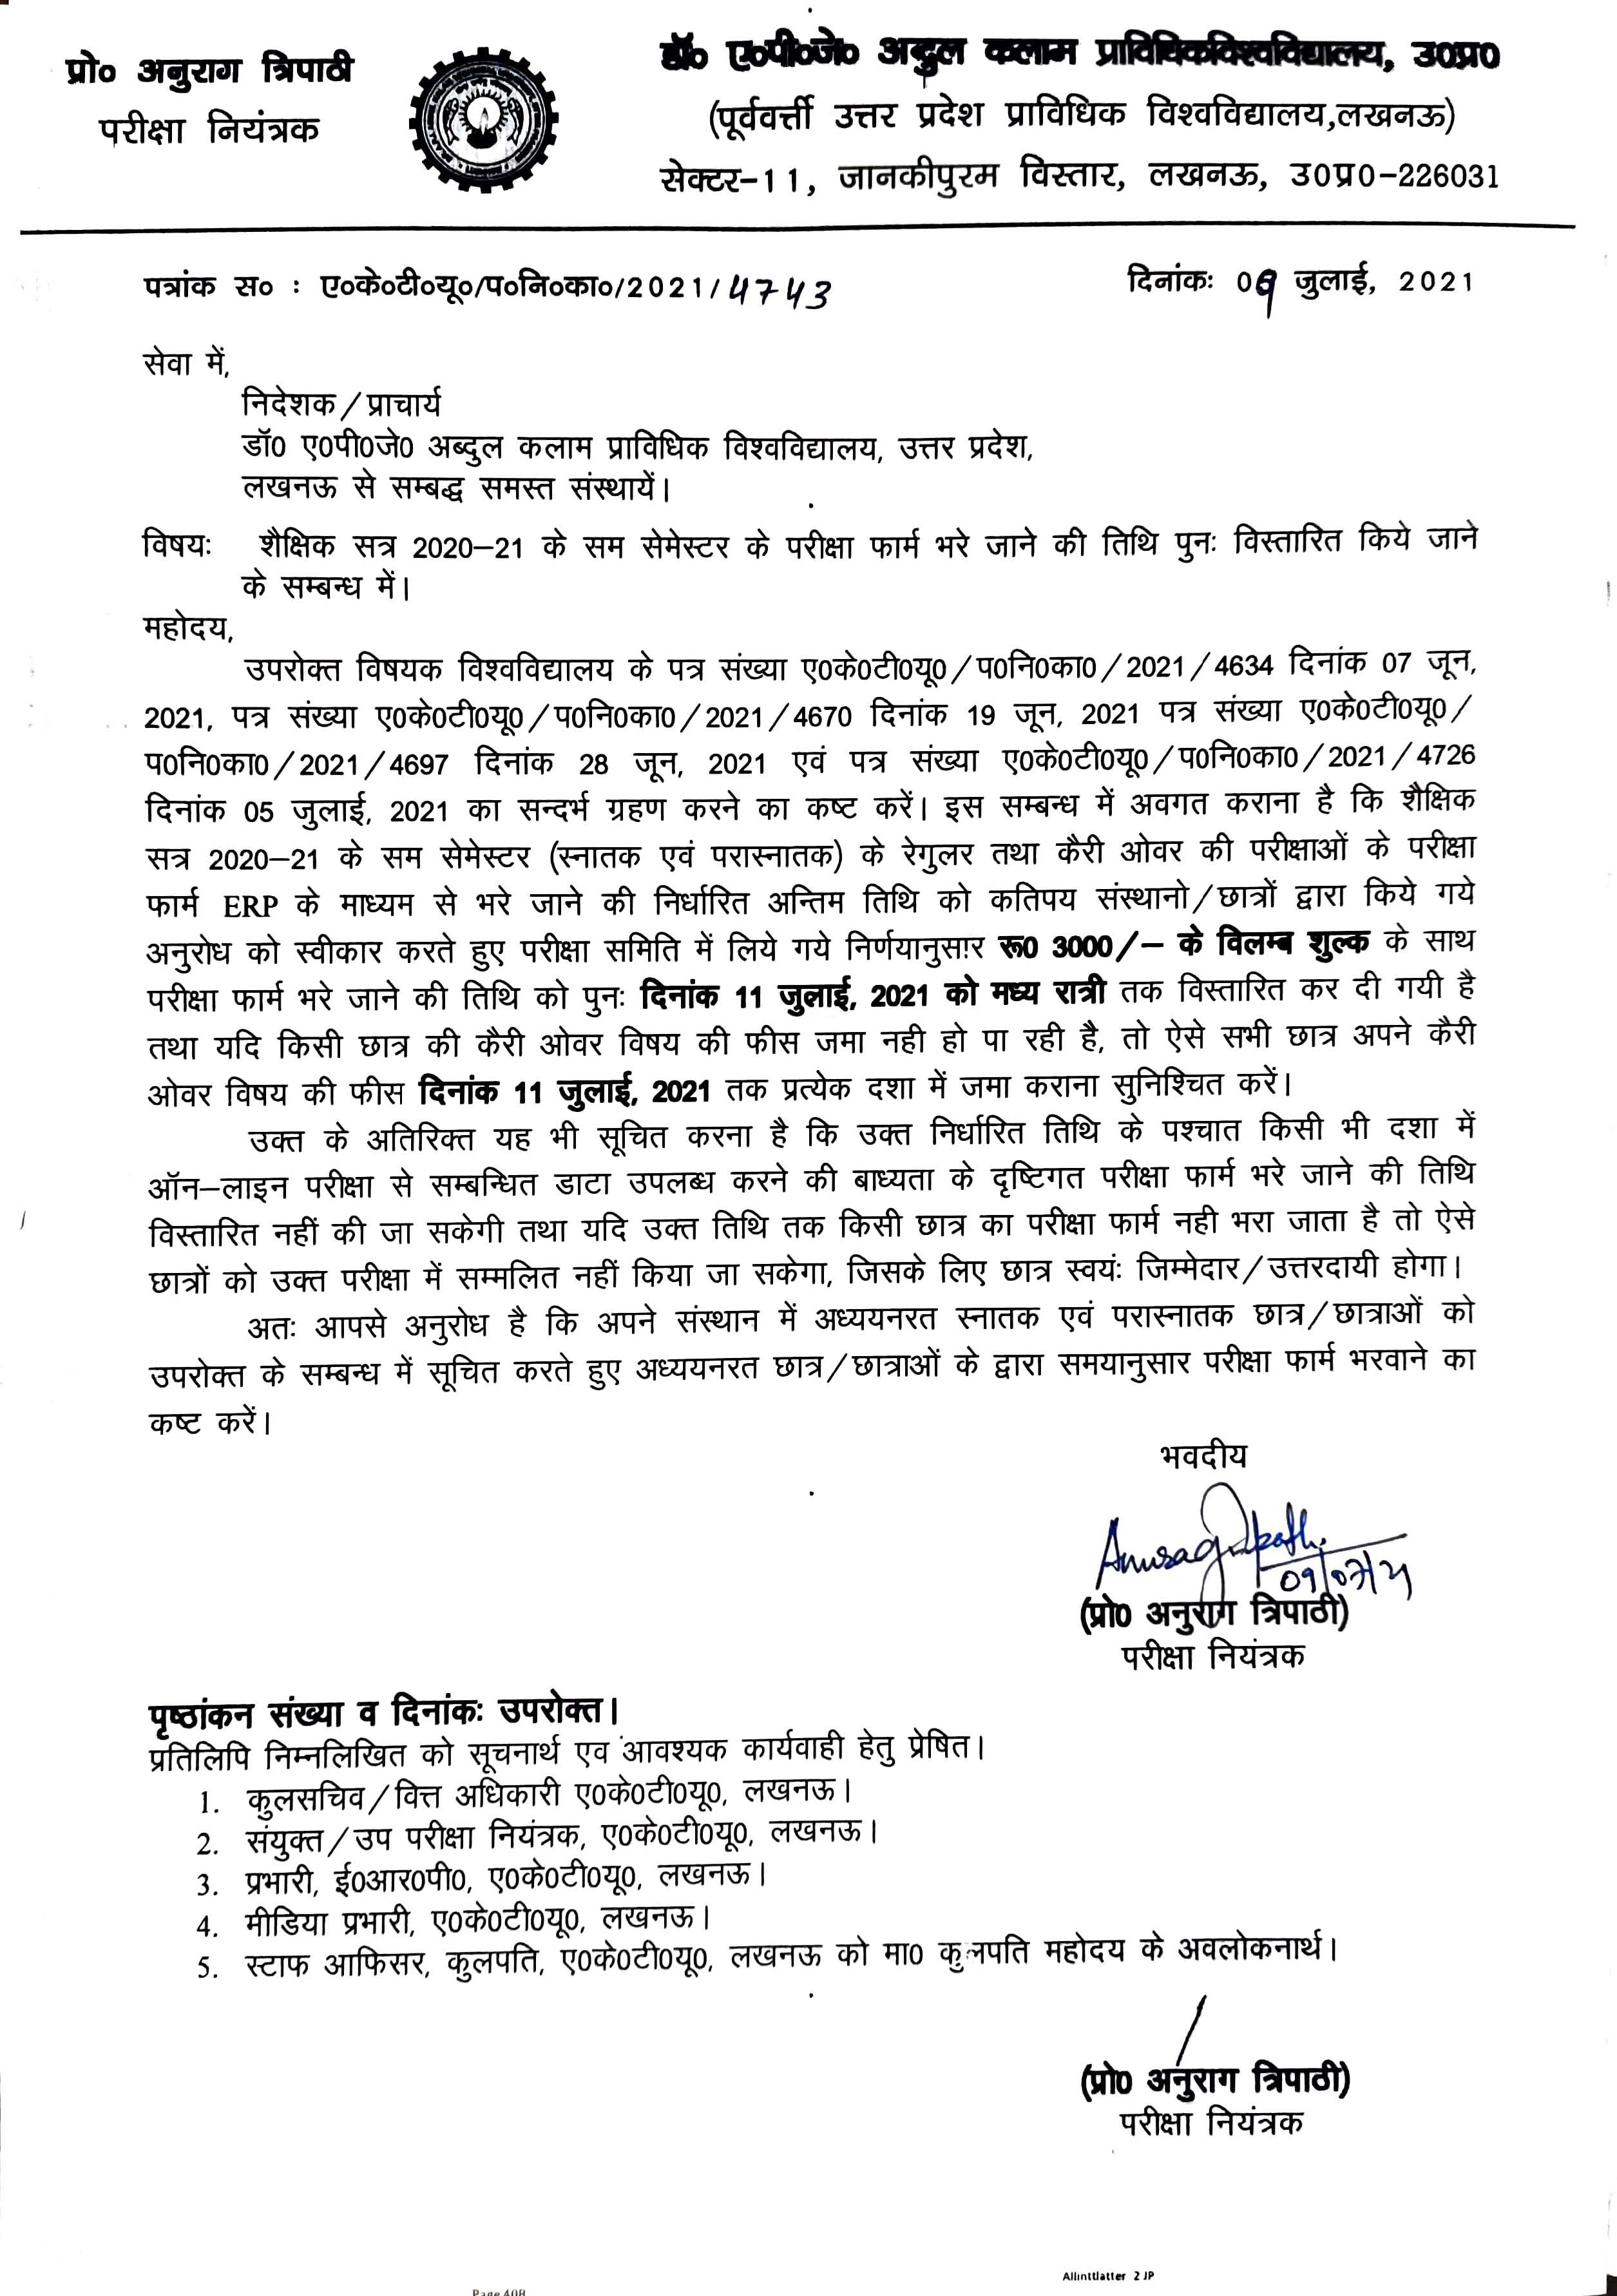 Extension of date of Examination Form for Even Semester 2020-21